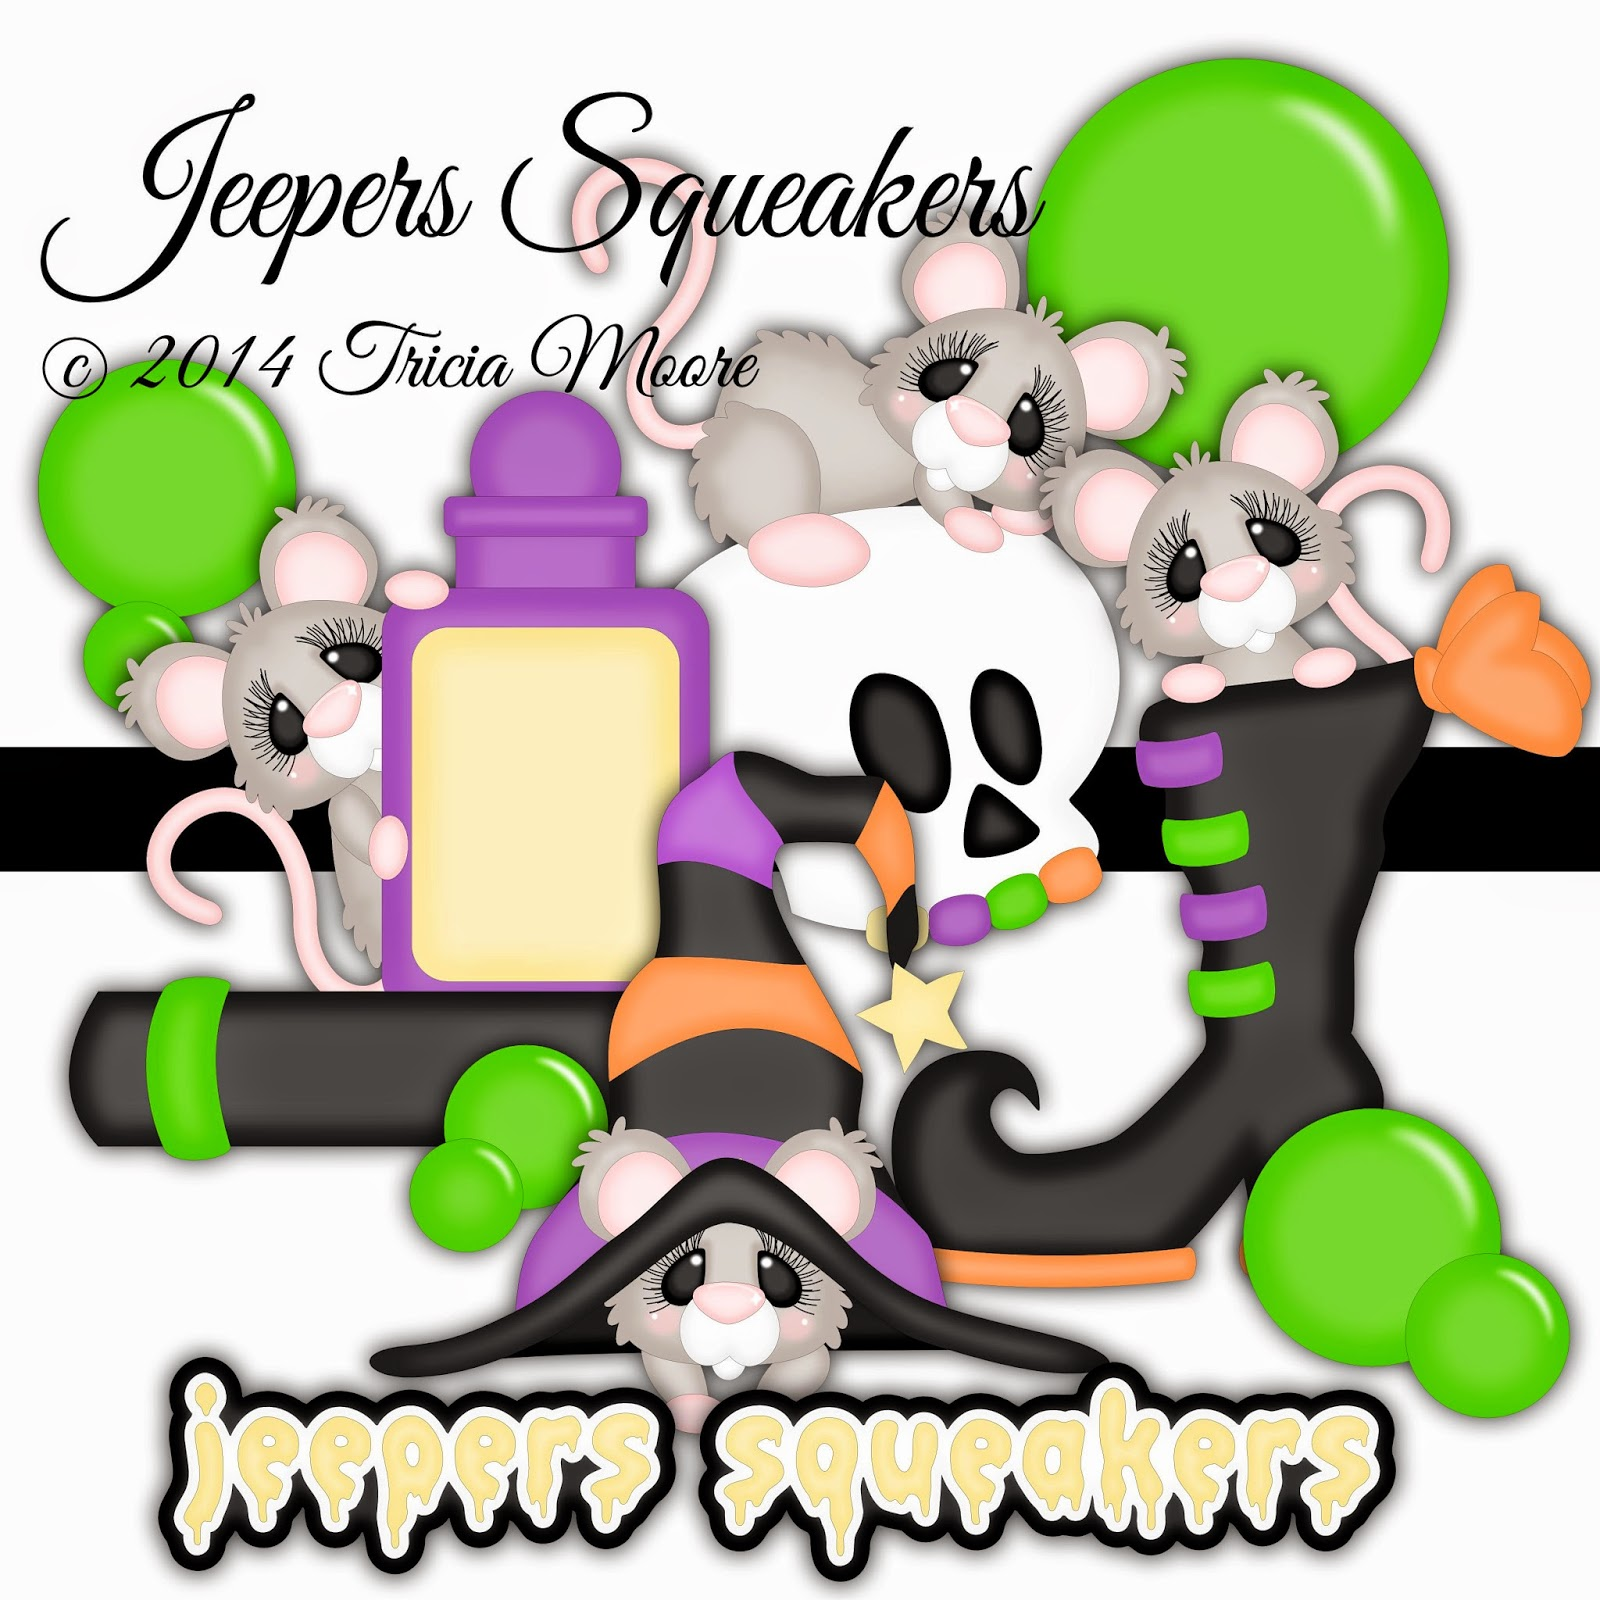 http://www.littlescrapsofheavendesigns.com/item_1198/Jeepers-Squeakers.htm